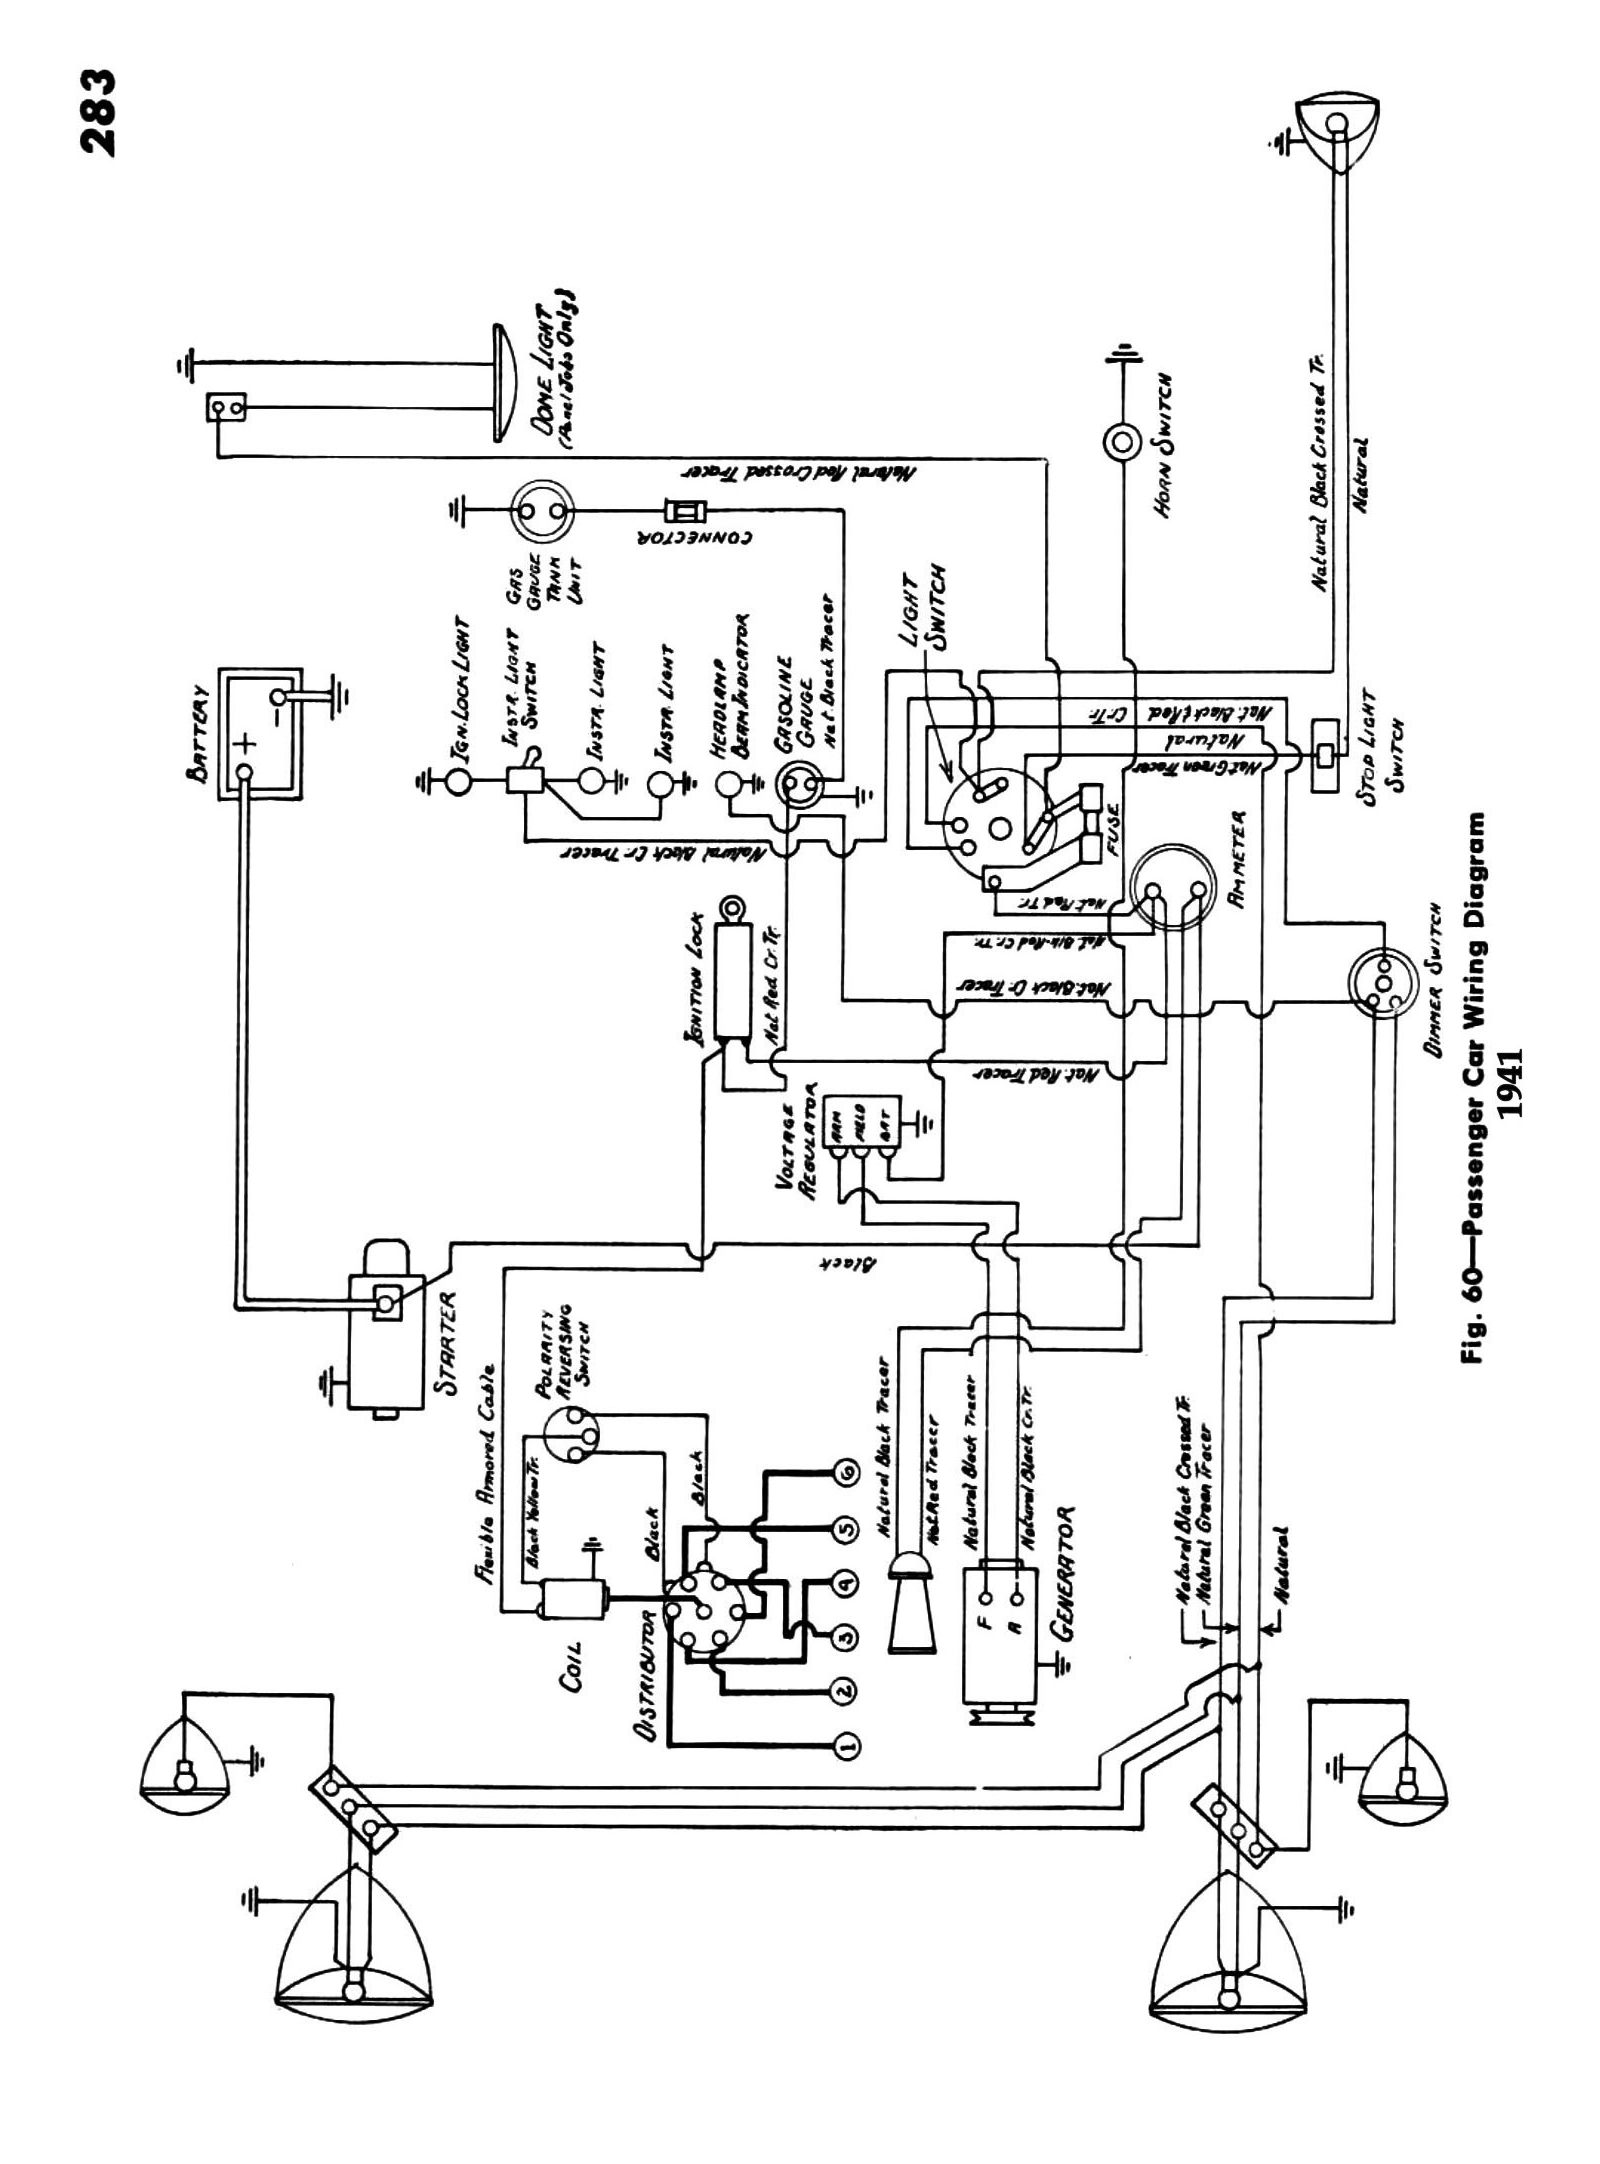 41csm283 chevy wiring diagrams simple chevy tbi wiring harness diagram at readyjetset.co